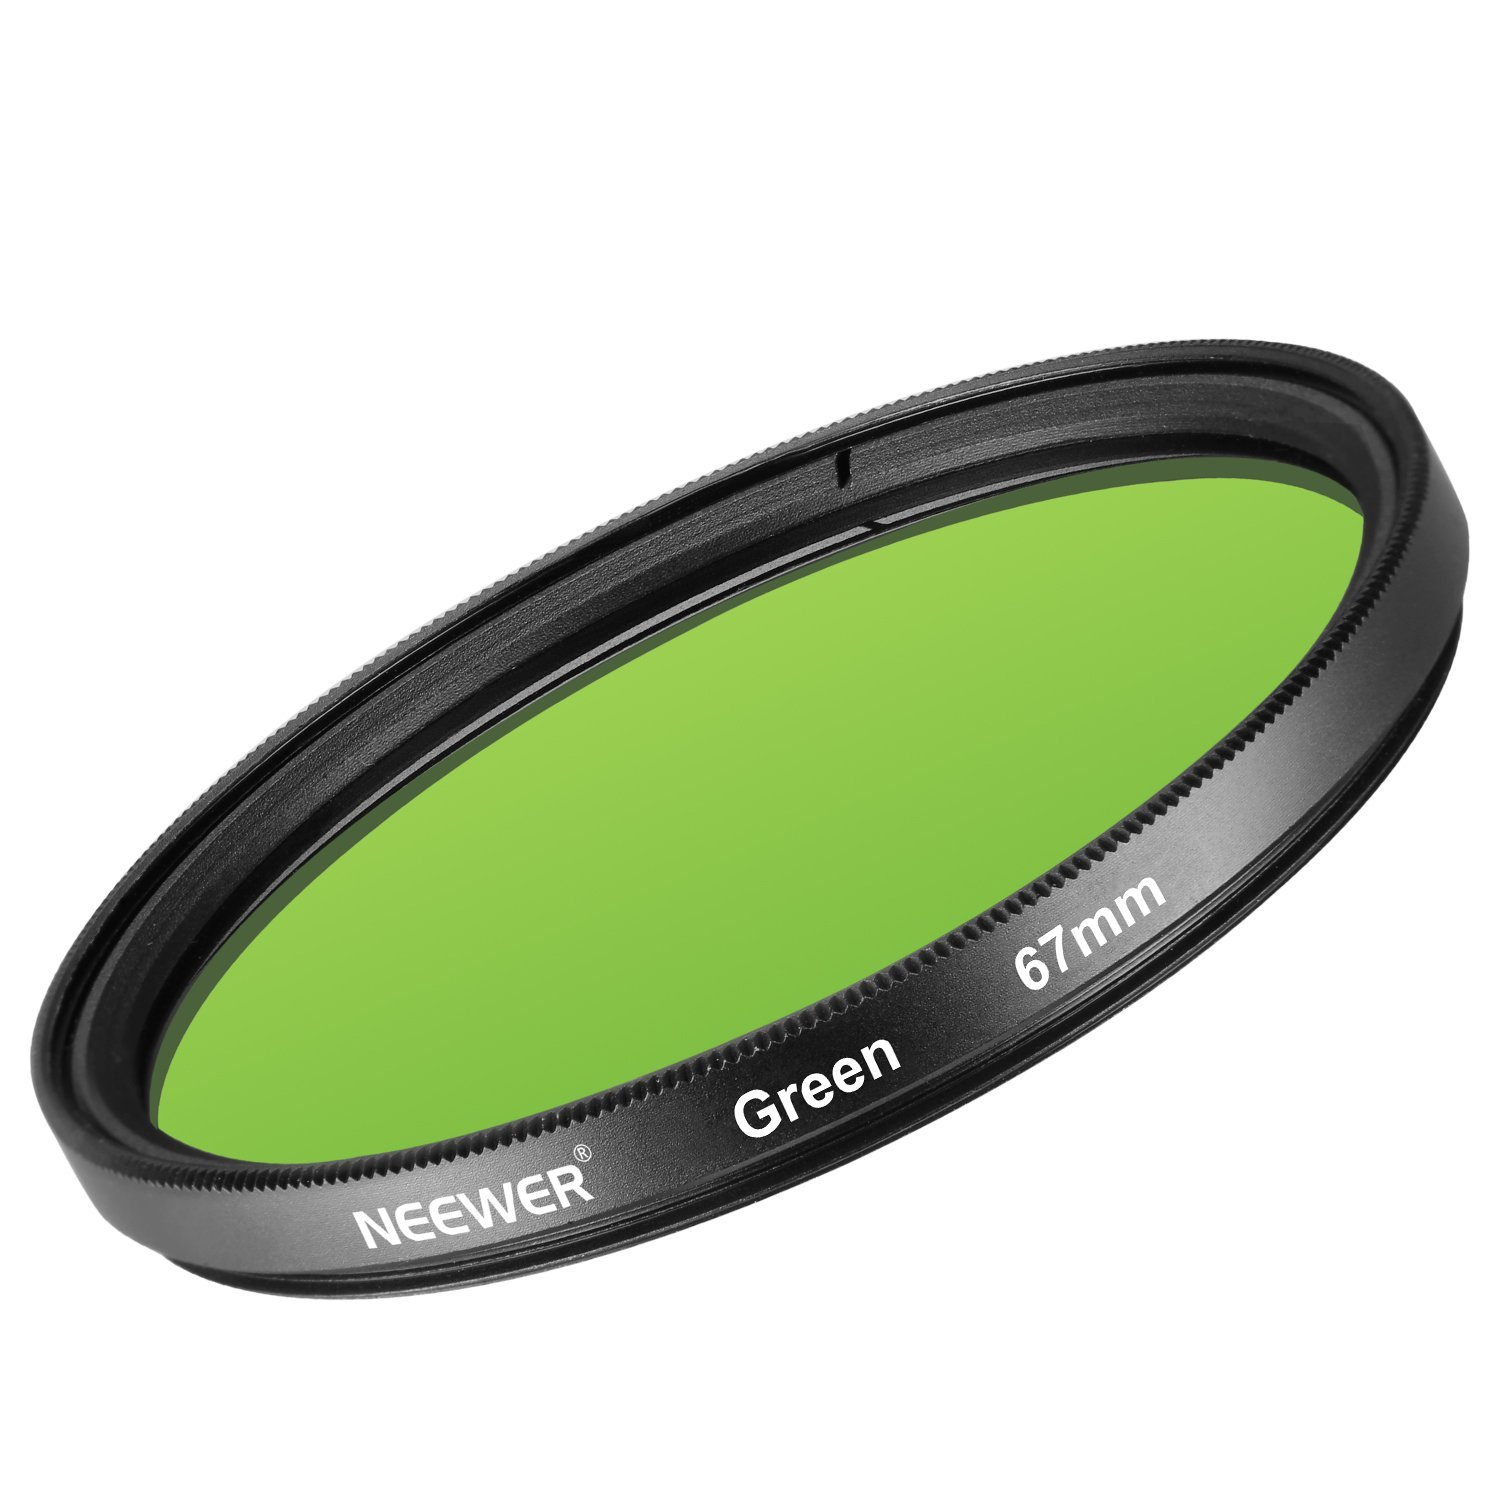 Neewer 67MM Green Lens Filter for Canon Rebel (T5i, T4i, T3i, T2i), EOS (70D, 700D, 650D, 600D, 550D) DSLR Cameras, Made of HD Optical Glass and Aluminum Alloy Frame